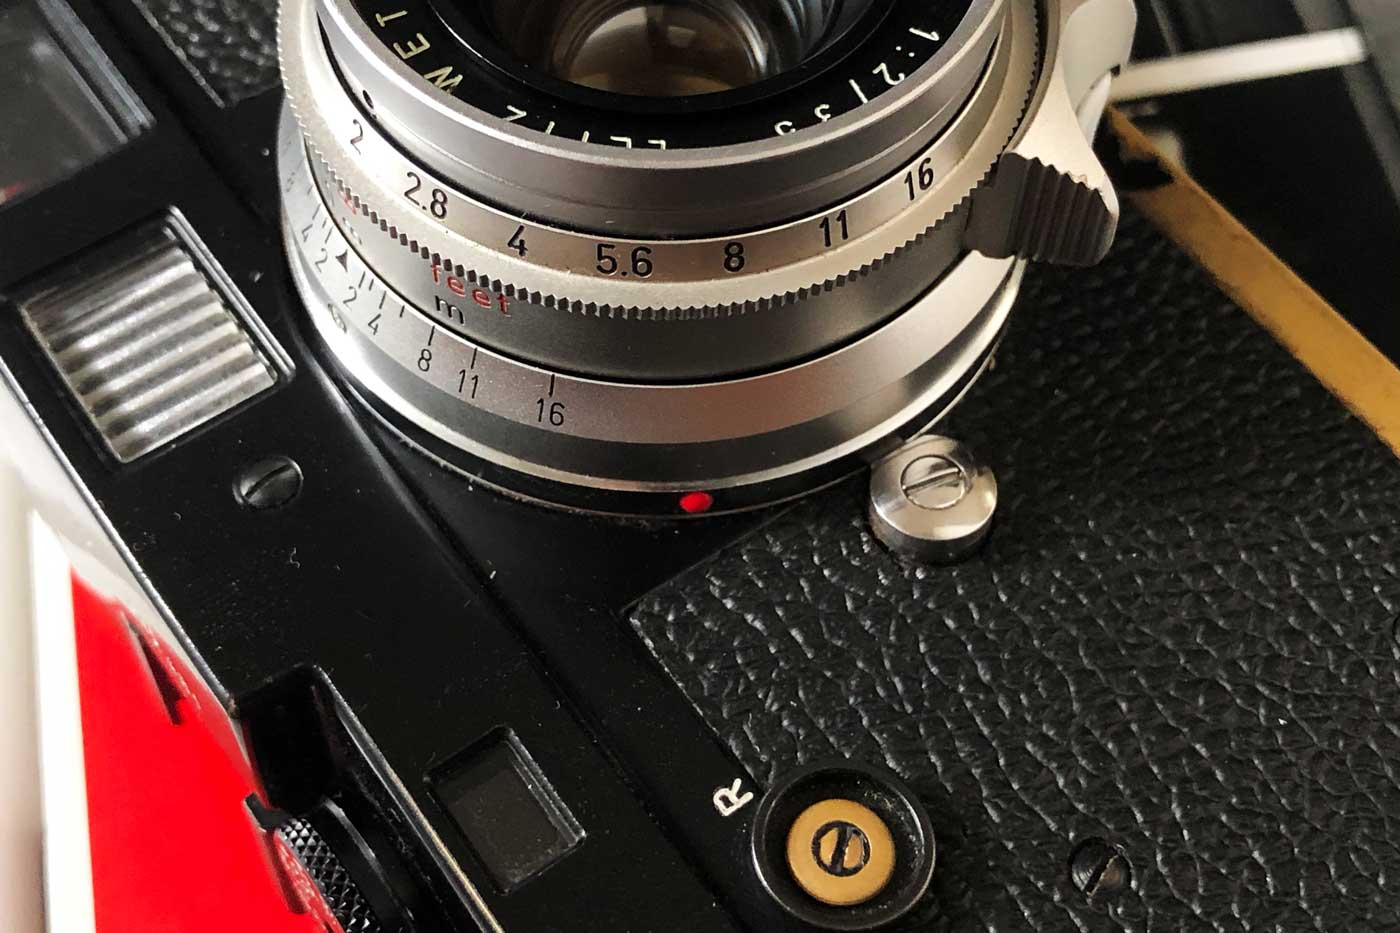 Leica-summicron-35mm-f2-8element-8-element-v1-version1-lens-review-blog-sharing-7element-gear-how-performance-barrel-design-finishing-silver-chrome-black-paint-brass-m2-rangefinder-m-mount-ltm